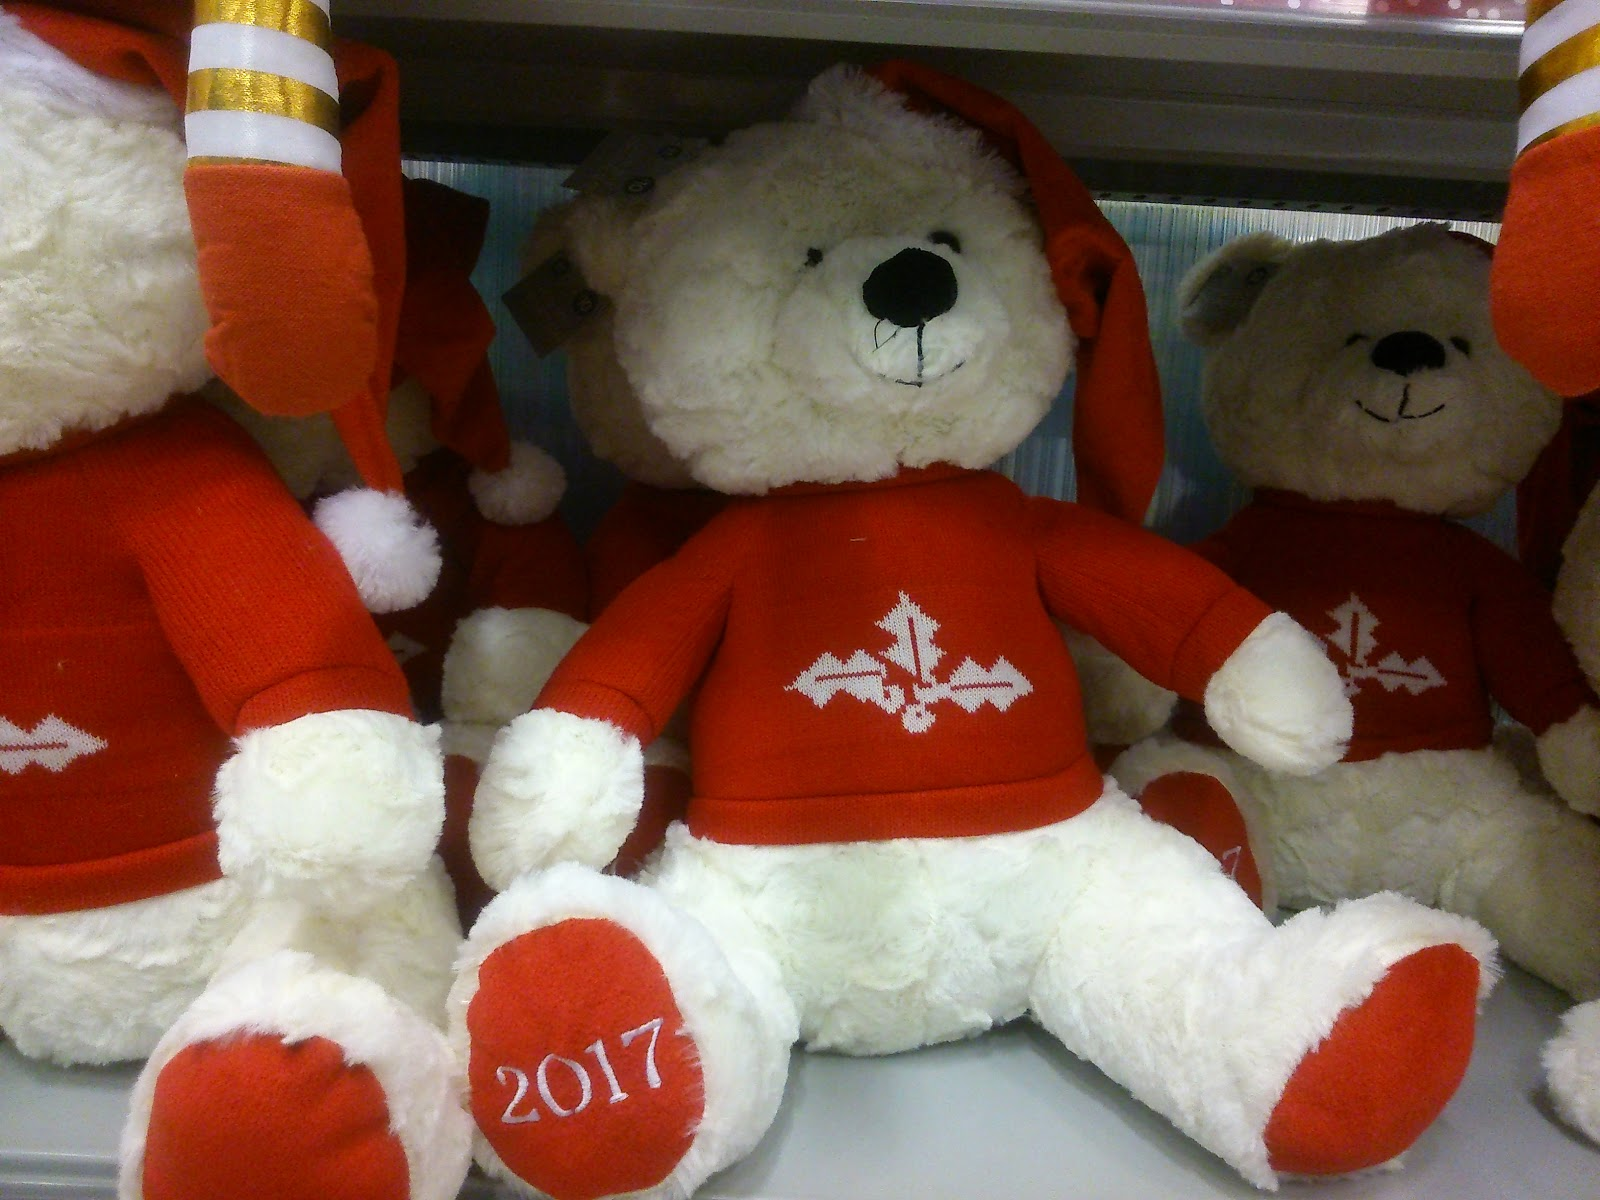 Swe-Aussie X-mas: Christmas at Kmart